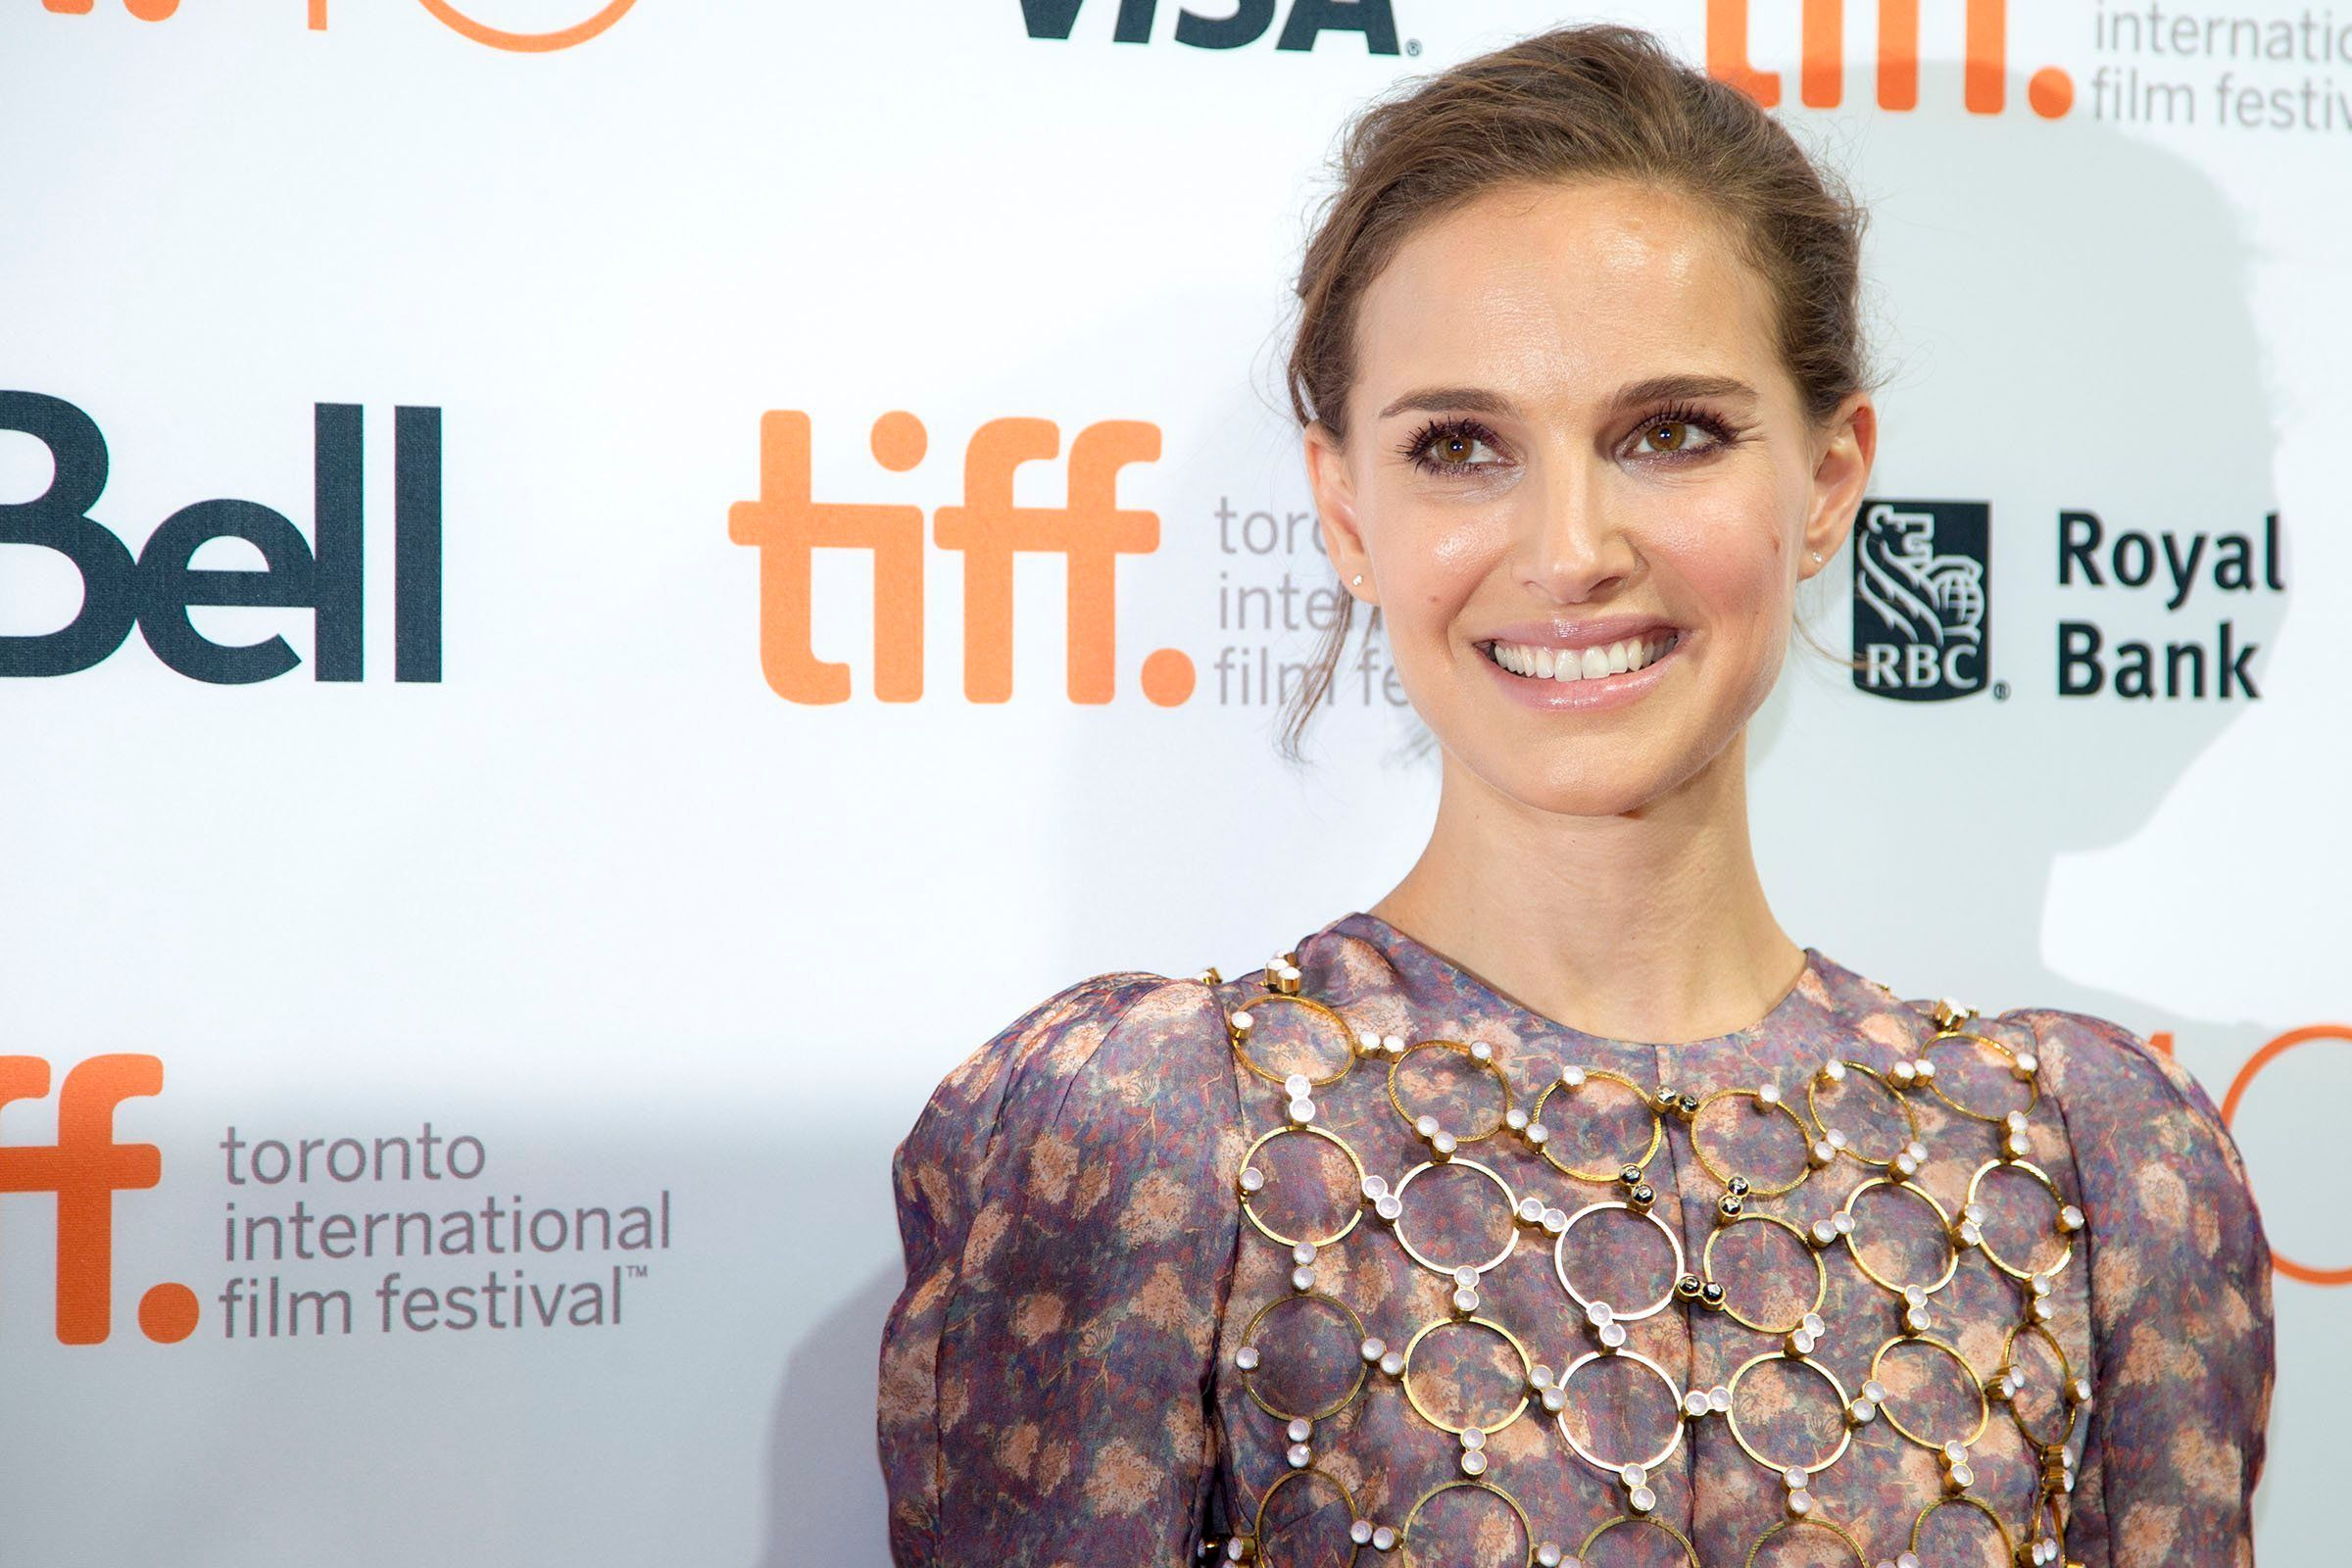 TORONTO, ON - SEPTEMBER 9  -  Actress Natalie Portman on the red carpet at the TIFF Bell Lightbox in Toronto on September 9, 2015. On the eve of TIFF's 40th year, Toronto's film buffs and celebrity obsessed gather at the Lightbox for an on-stage conversation with Natalie Portman. Carlos Osorio/Toronto Star        (Carlos Osorio/Toronto Star via Getty Images)